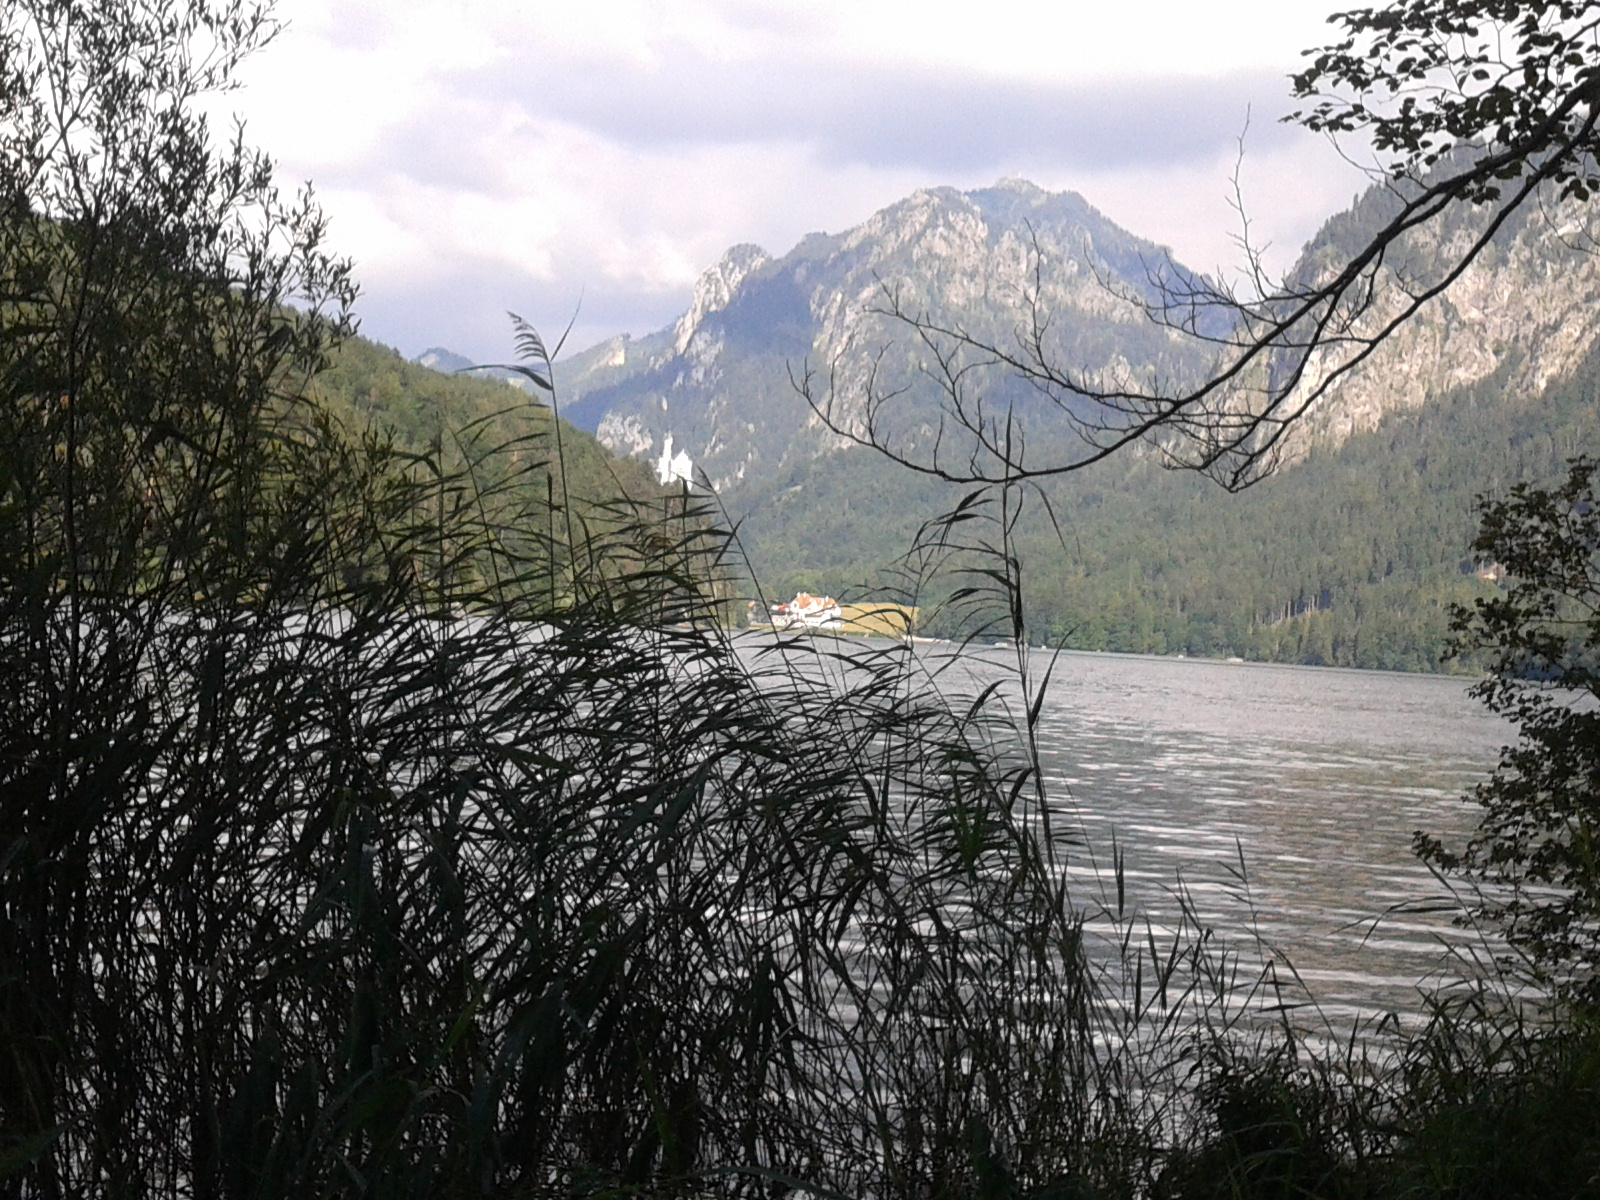 view over Alpsee lake towards Neuschwanstein castle